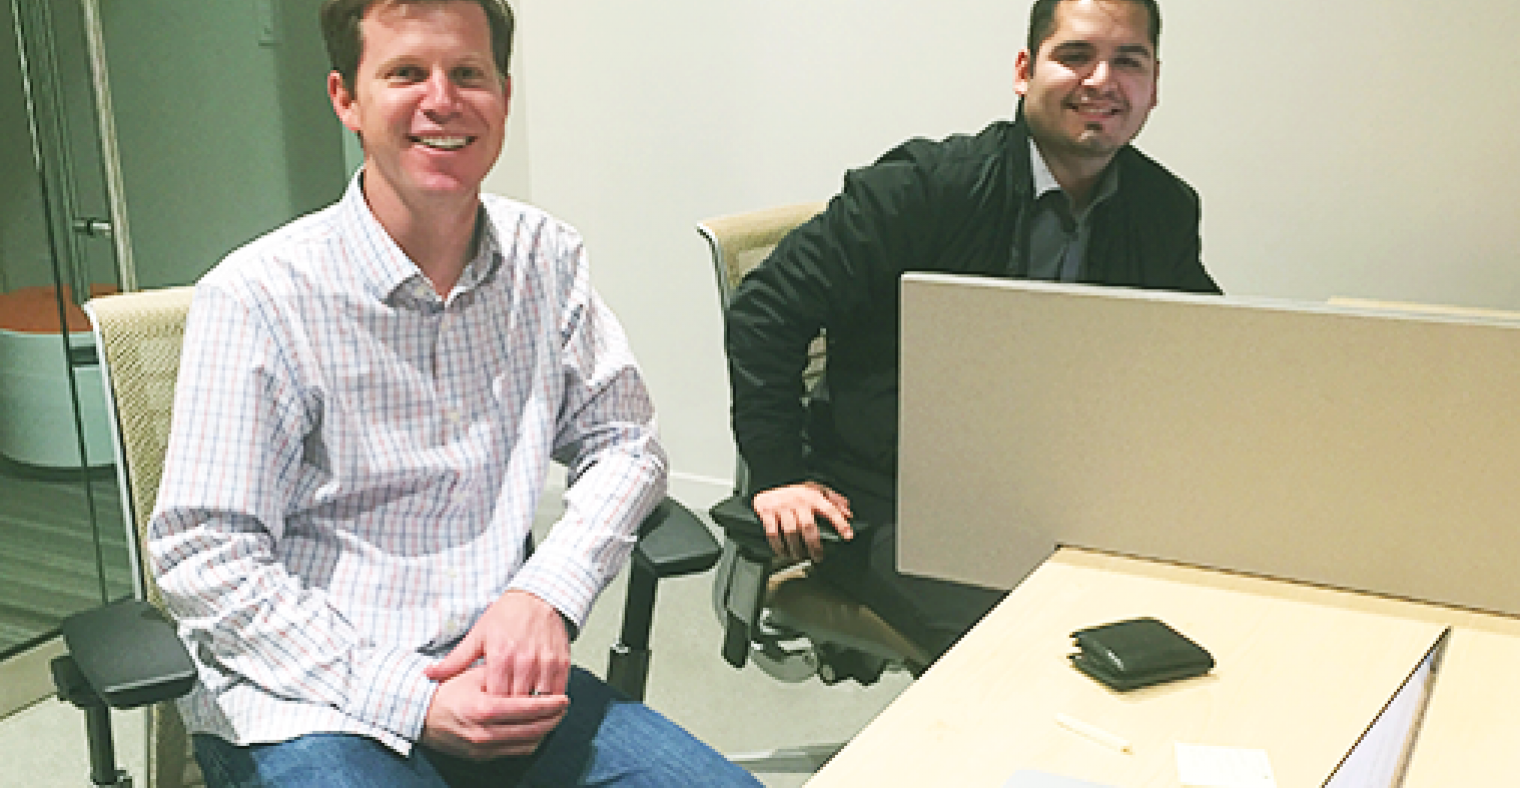 Victor & Adam from Specright Inc stop to flash their smiles while working.